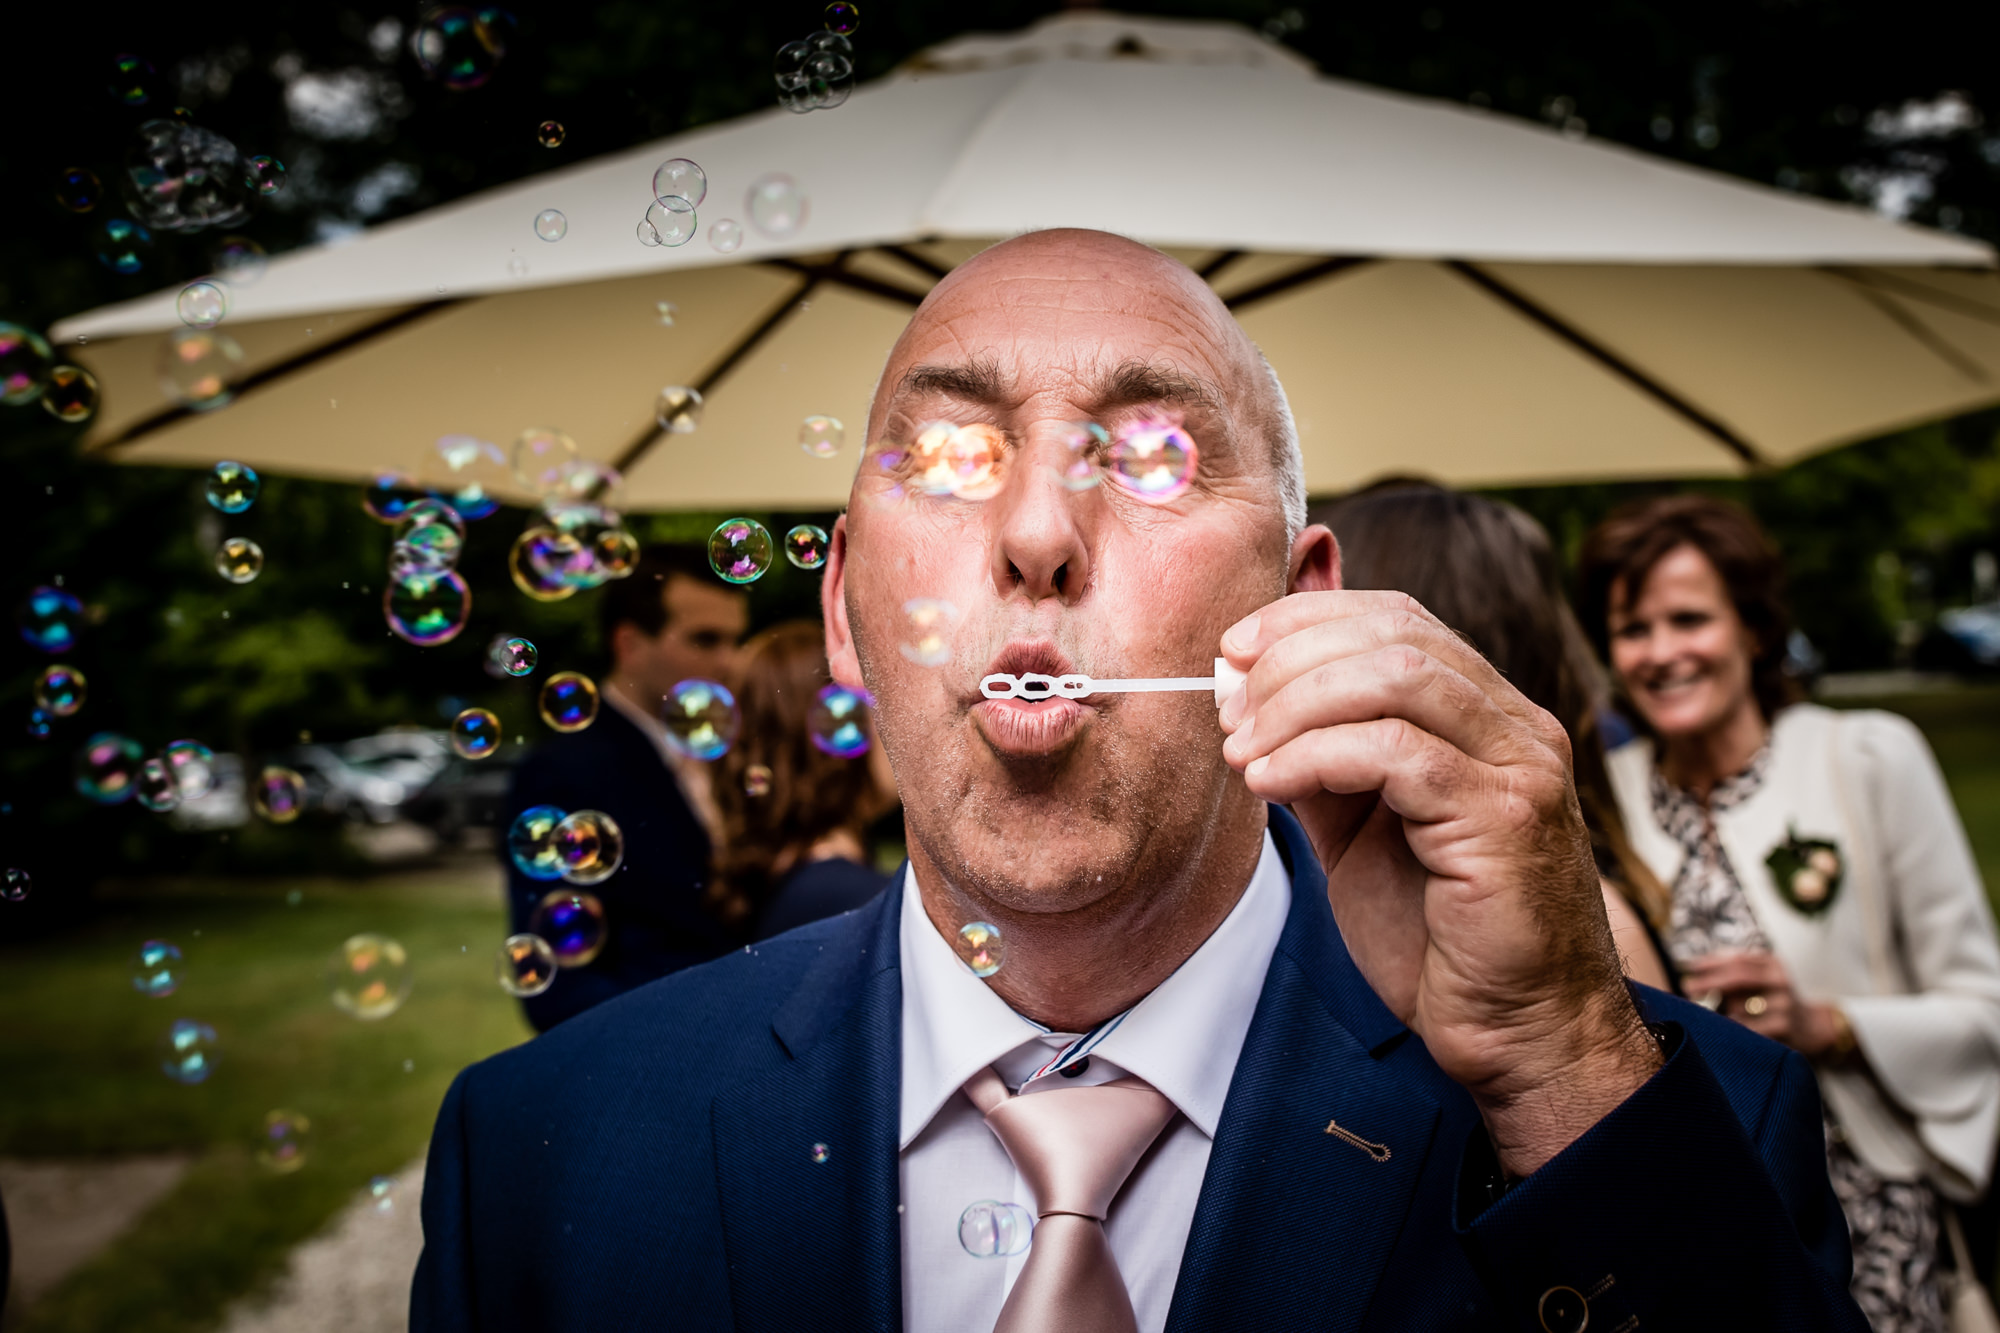 Father of the bride blows bubble in front of his eyes - photo by Eppel Photography